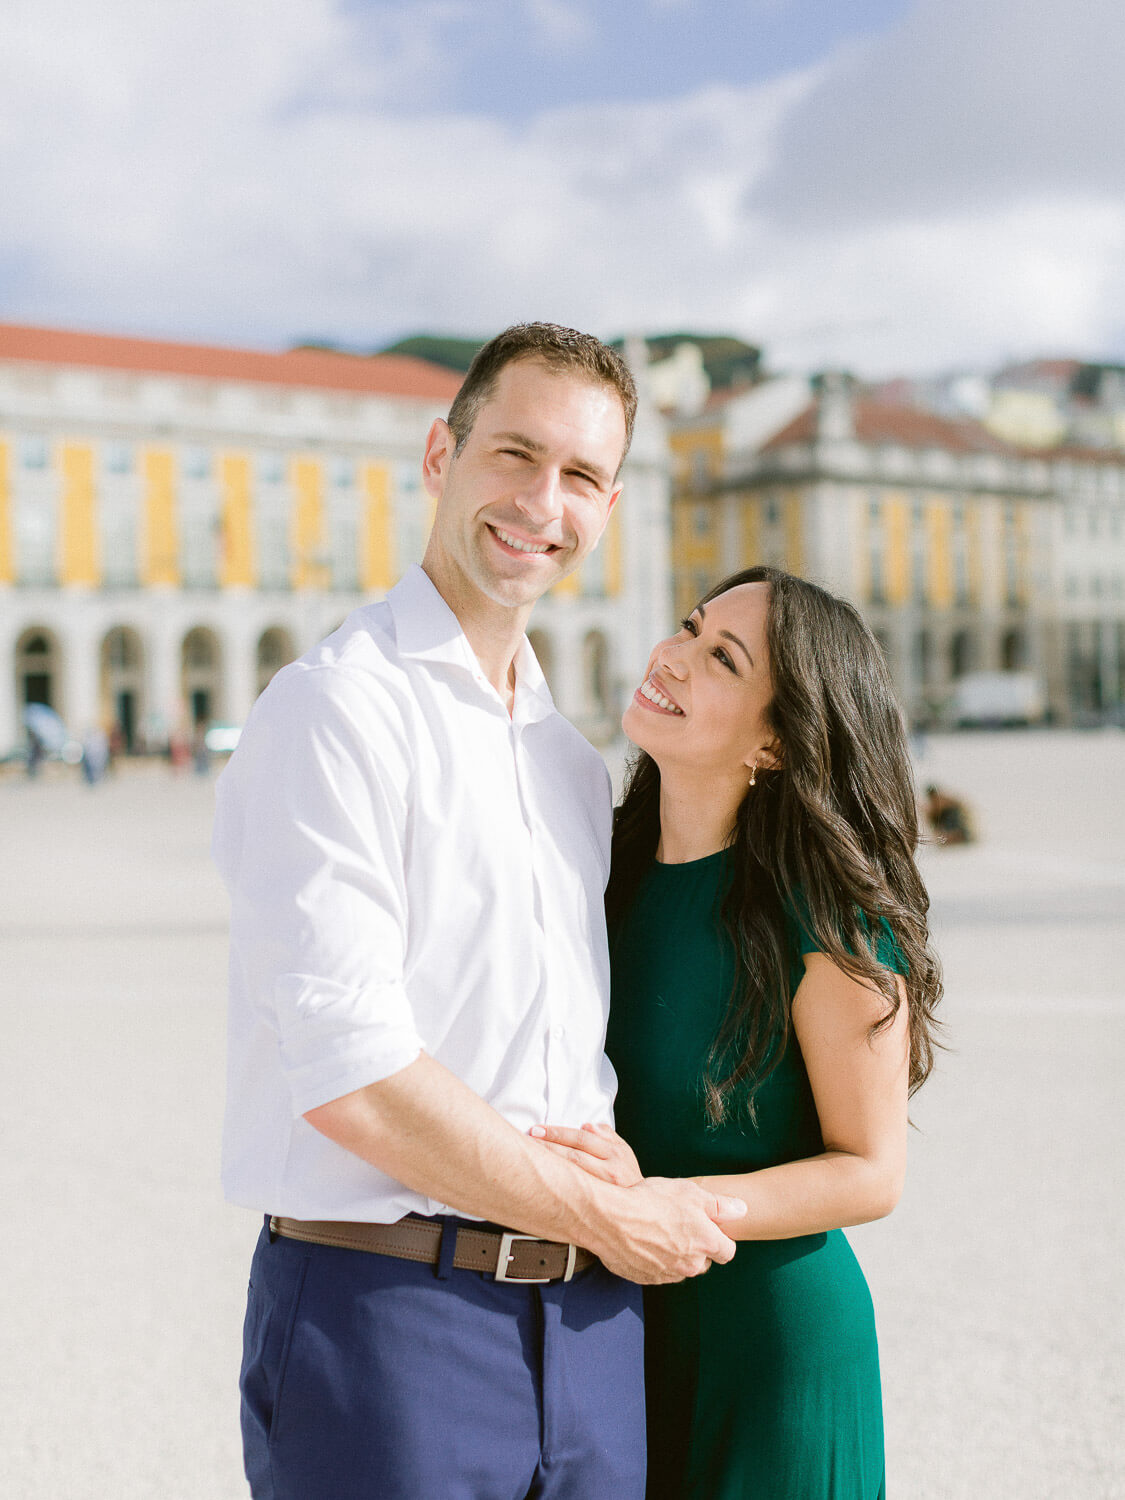 Couple portrait on Engagement Session in Lisbon by Portugal Wedding Photographer